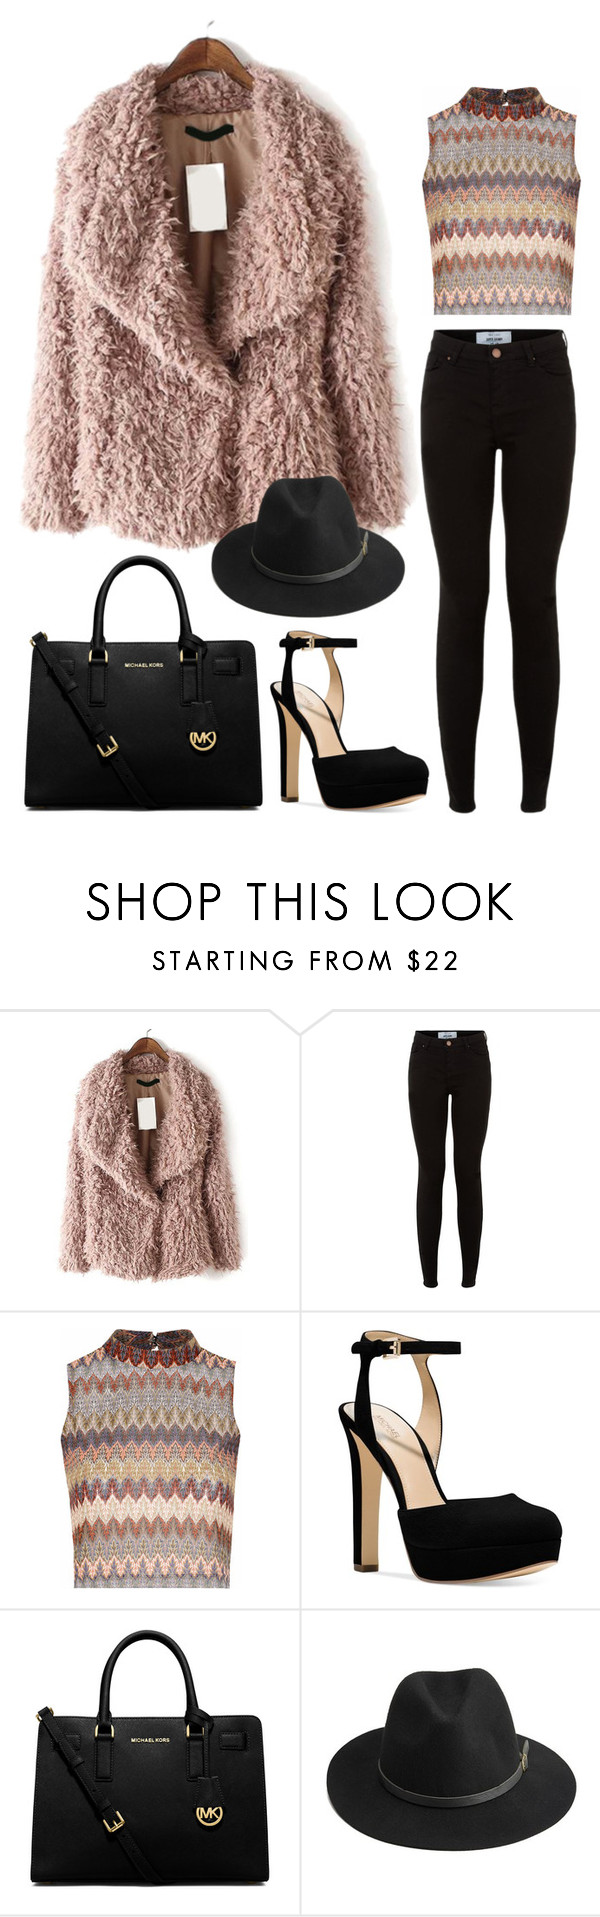 """""""The Fancy Woman"""" by vashappeninami ❤ liked on Polyvore featuring Glamorous, Michael Kors, MICHAEL Michael Kors, BeckSöndergaard, women's clothing, women's fashion, women, female, woman and misses"""